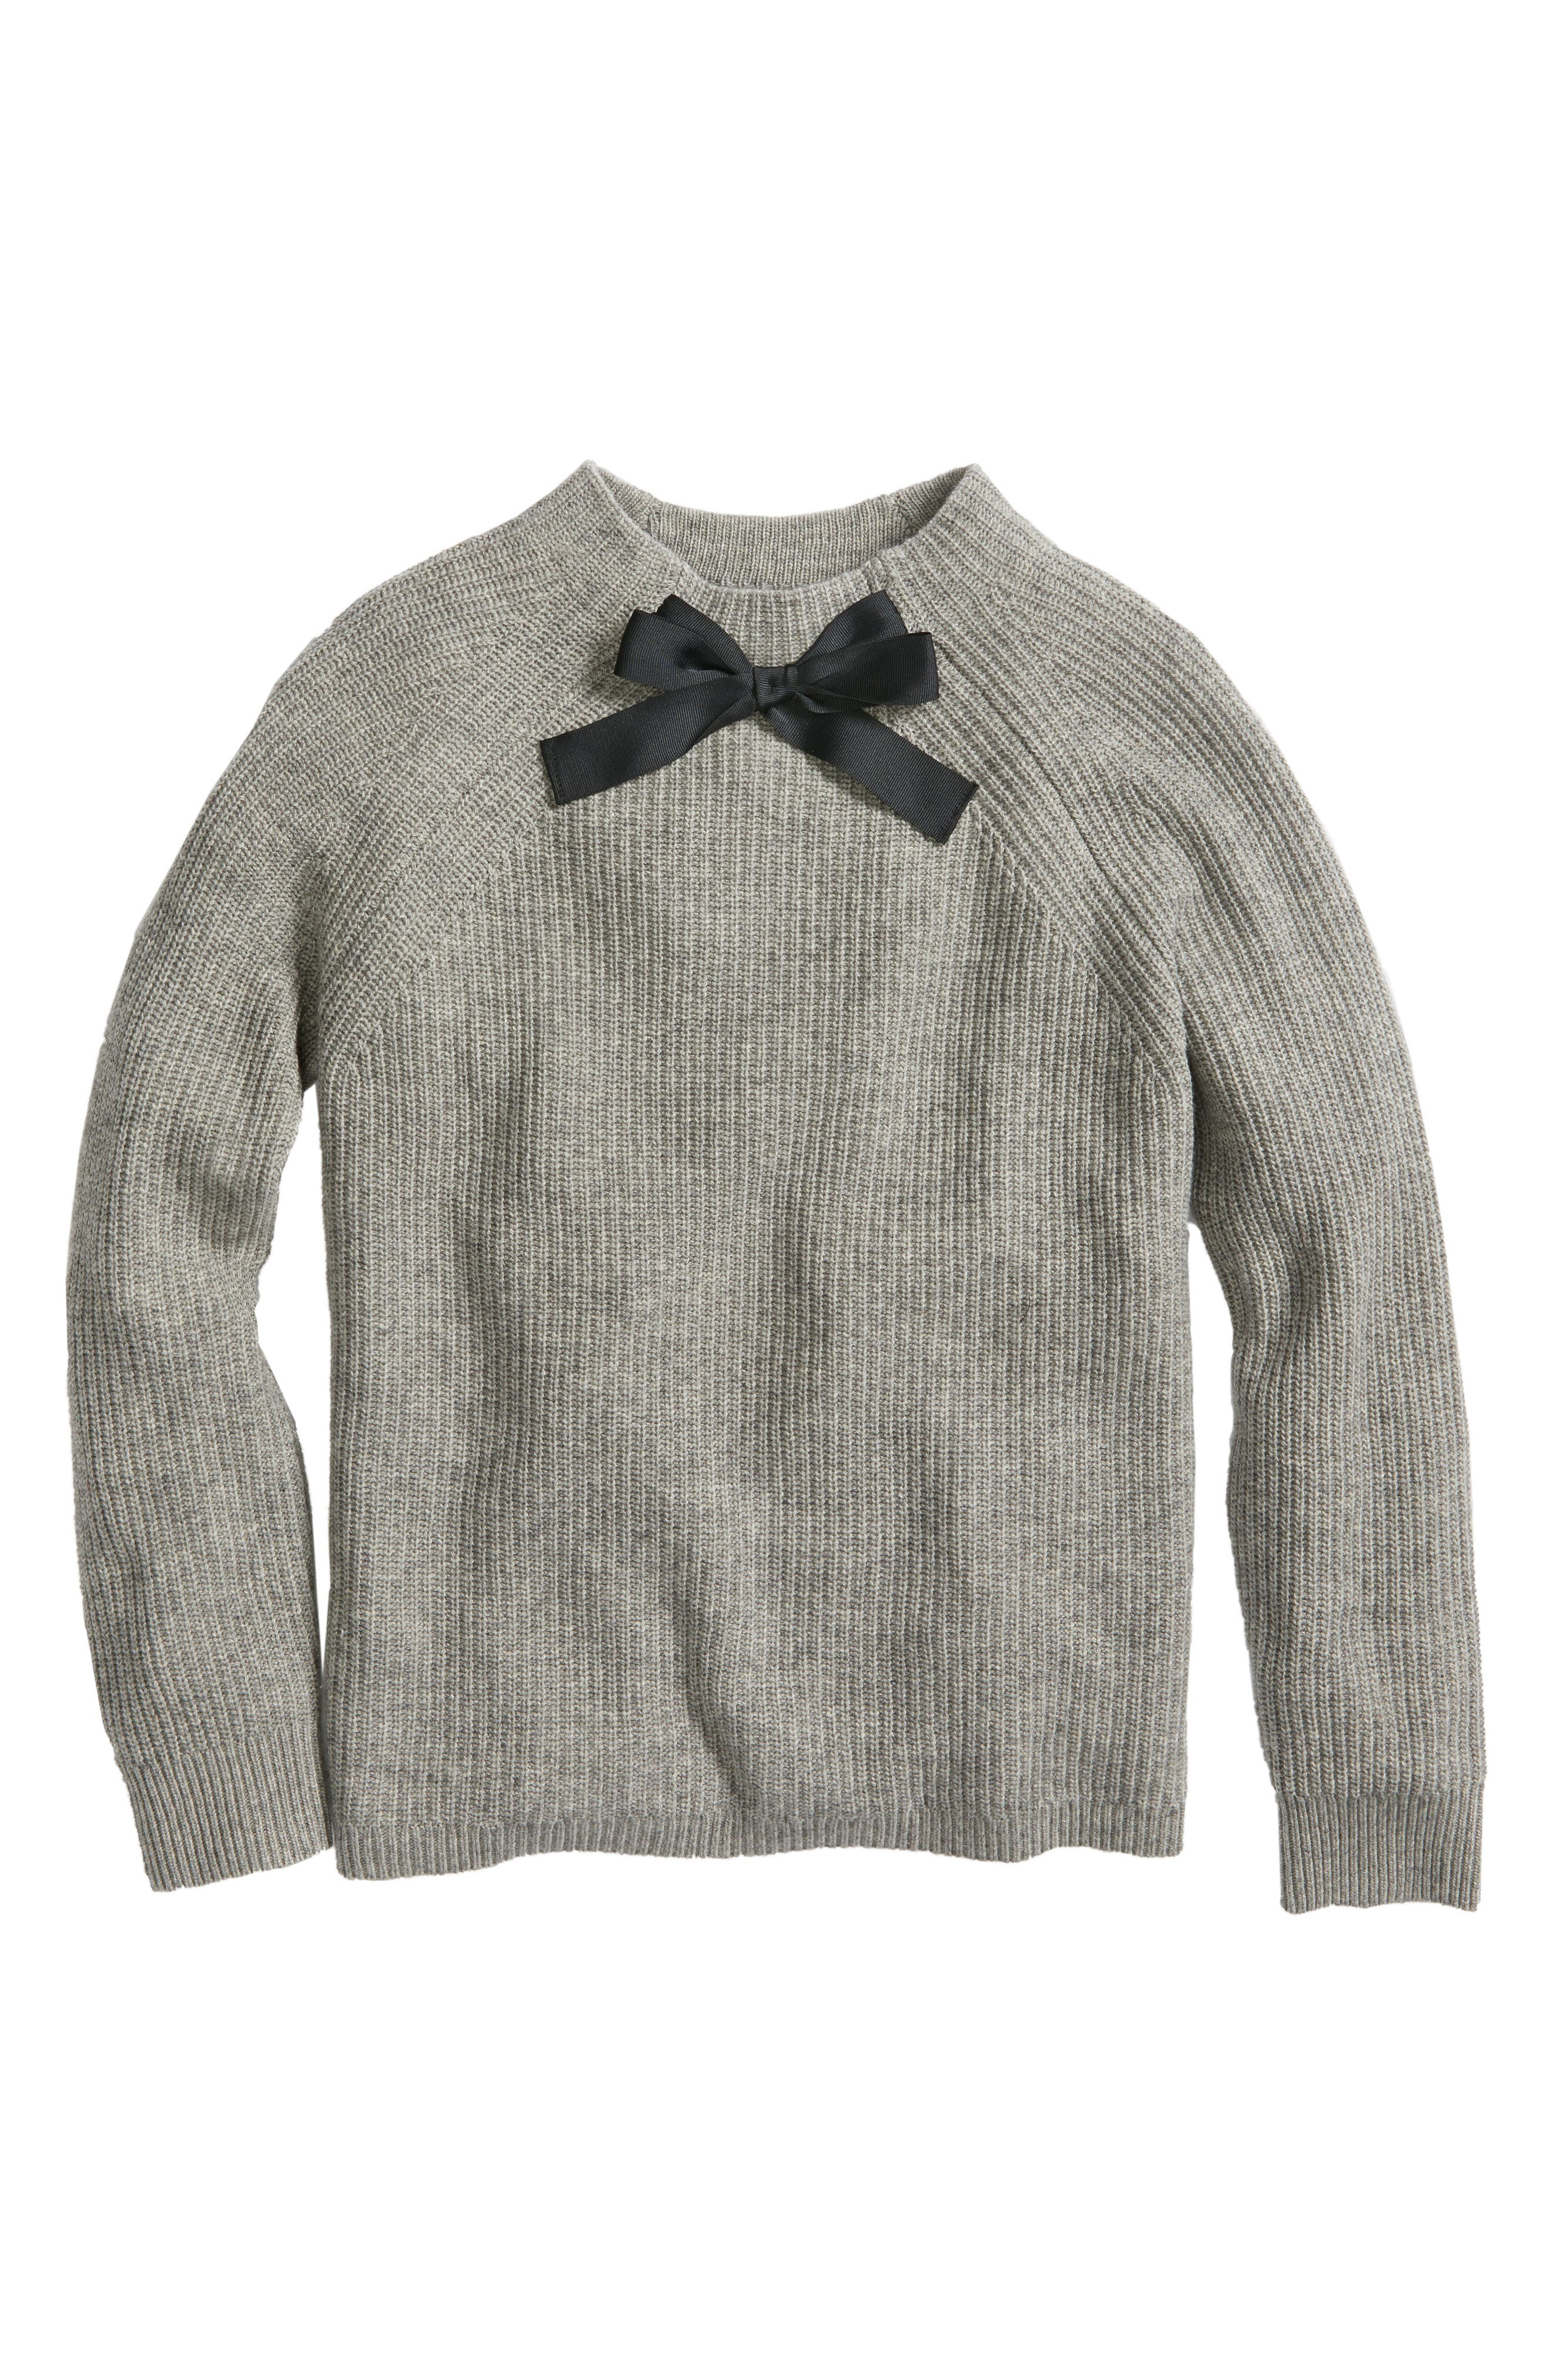 Gayle Tie Neck Sweater,                             Alternate thumbnail 19, color,